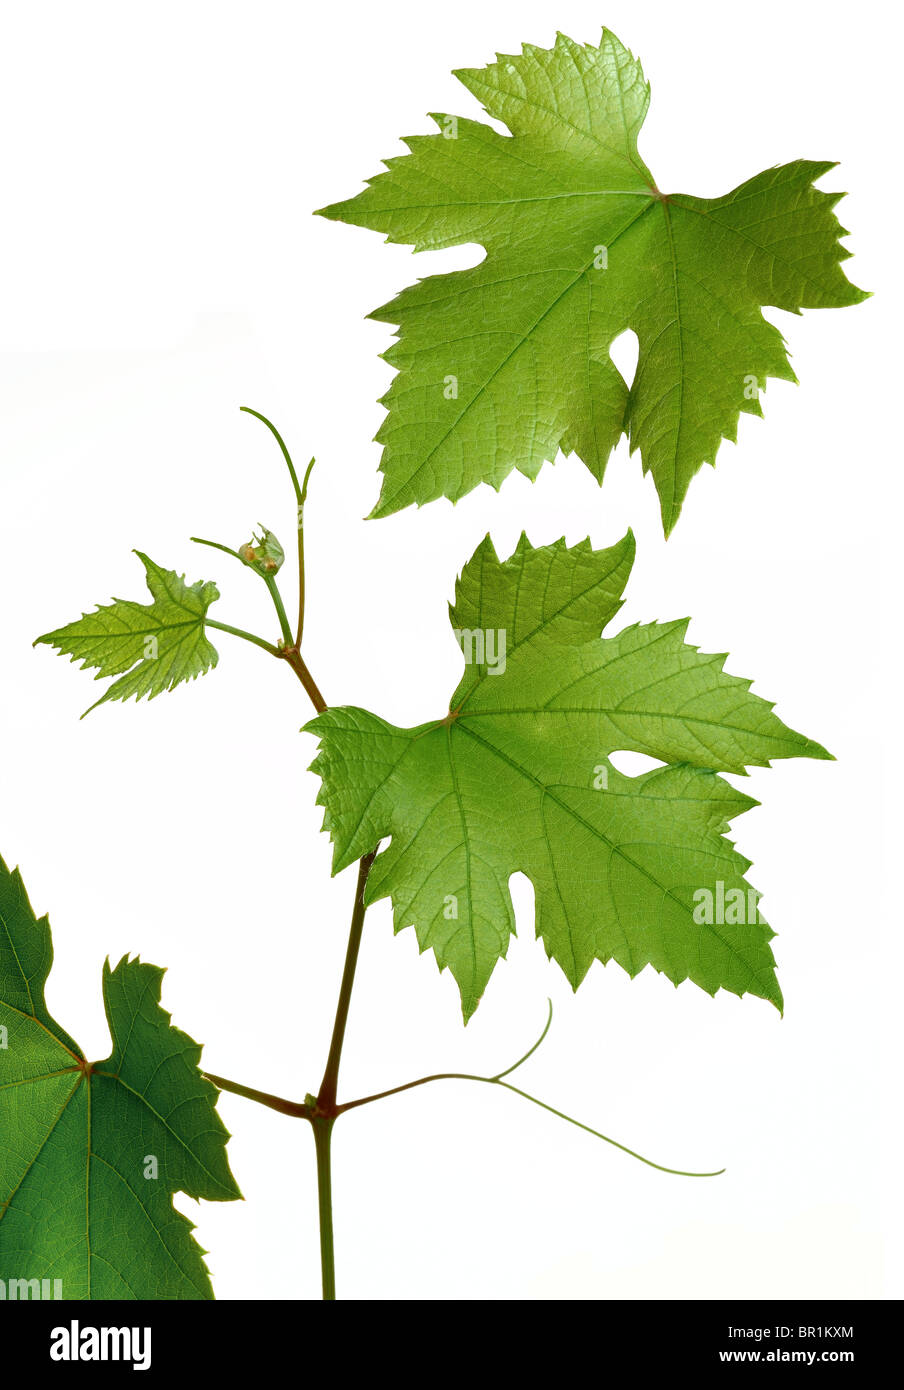 grapevine leaves Stock Photo